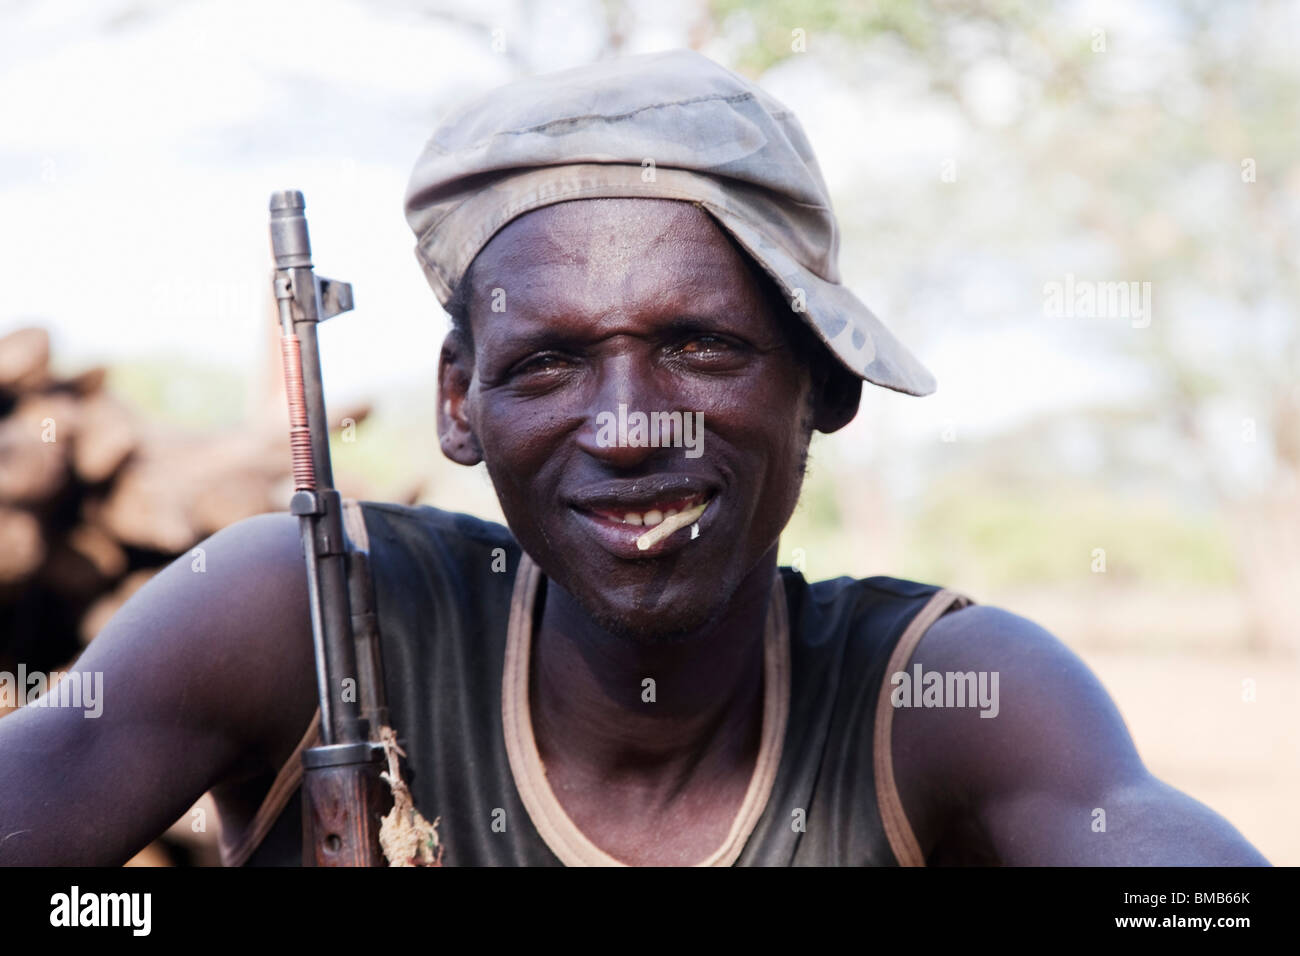 Tsemai tribal from  Southern Ethiopia with a gun - Stock Image